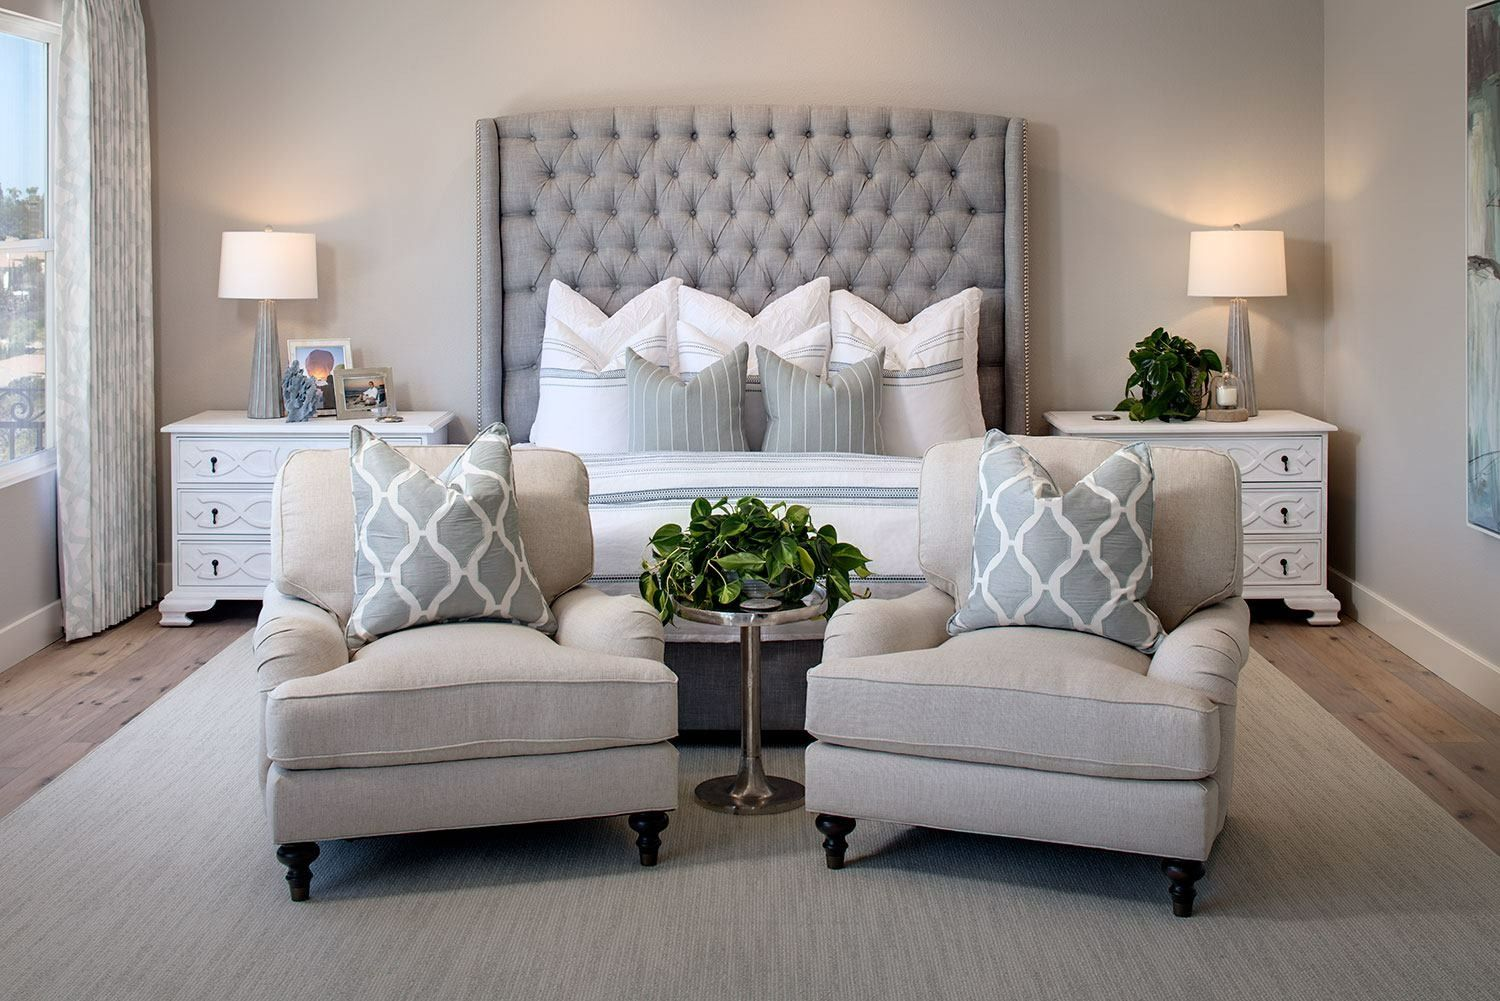 Tracy Lynn Studio  Master bedroom retreat.     Made possible with help from Spectra Home, Noir Furniture, Four Hands Home, and Kravet. Photo by Zack Benson Architectural Photography